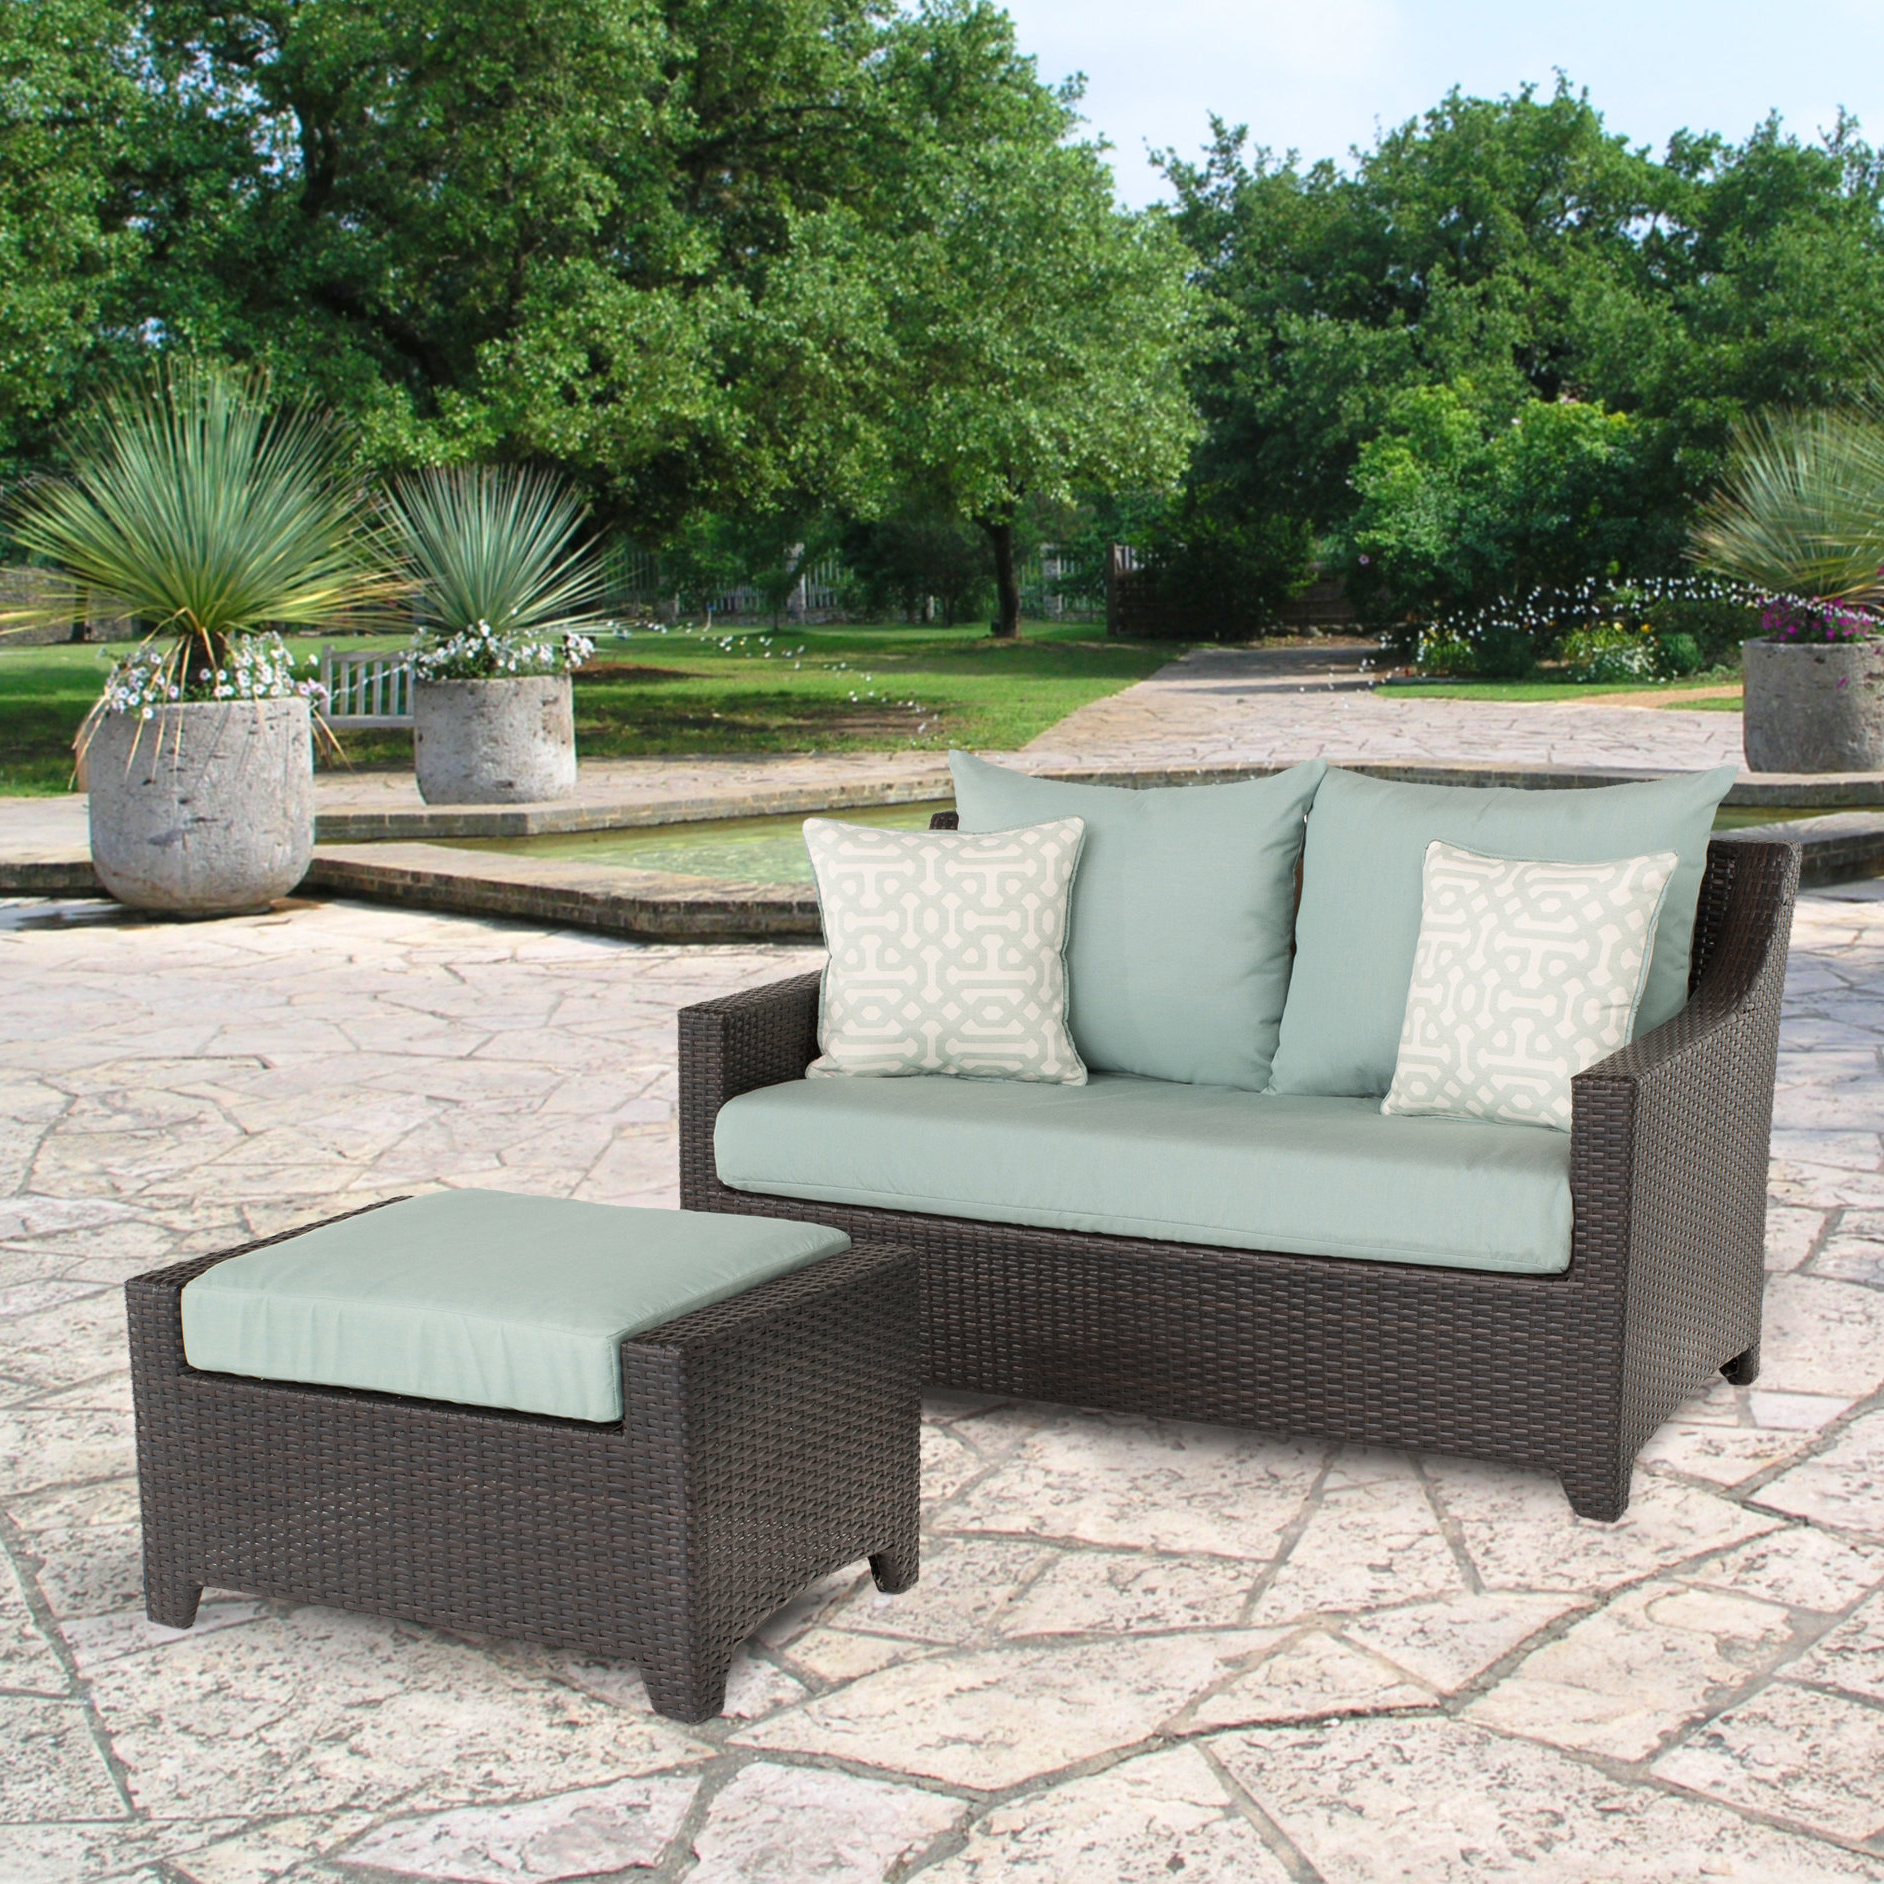 Fashionable Northridge Loveseat With Cushions With Regard To Avadi Outdoor Sofas & Ottomans 3 Piece Set (View 16 of 25)